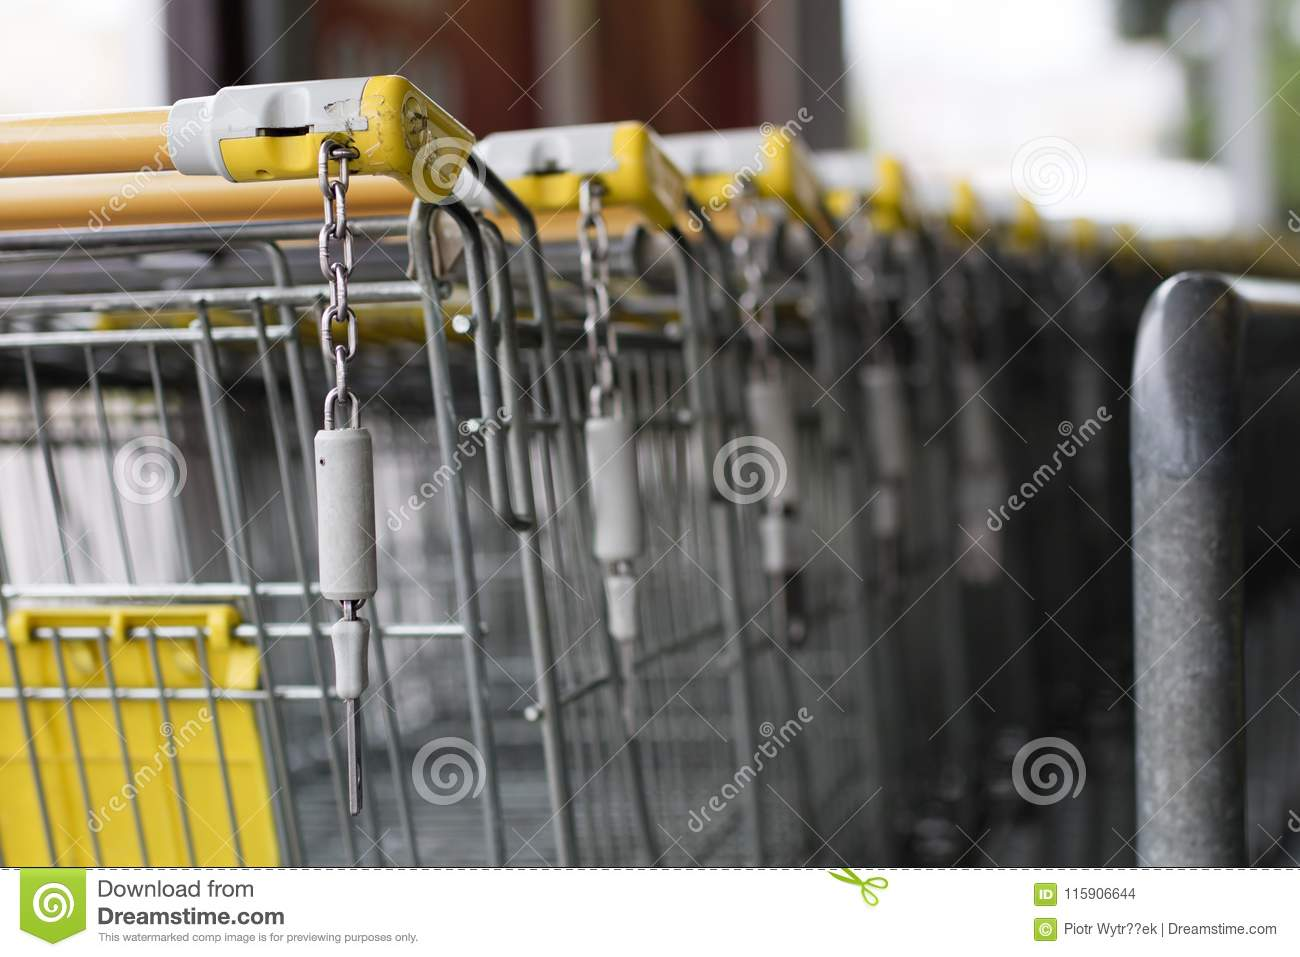 The shopping cart trolleys are placed under the market. Shopping